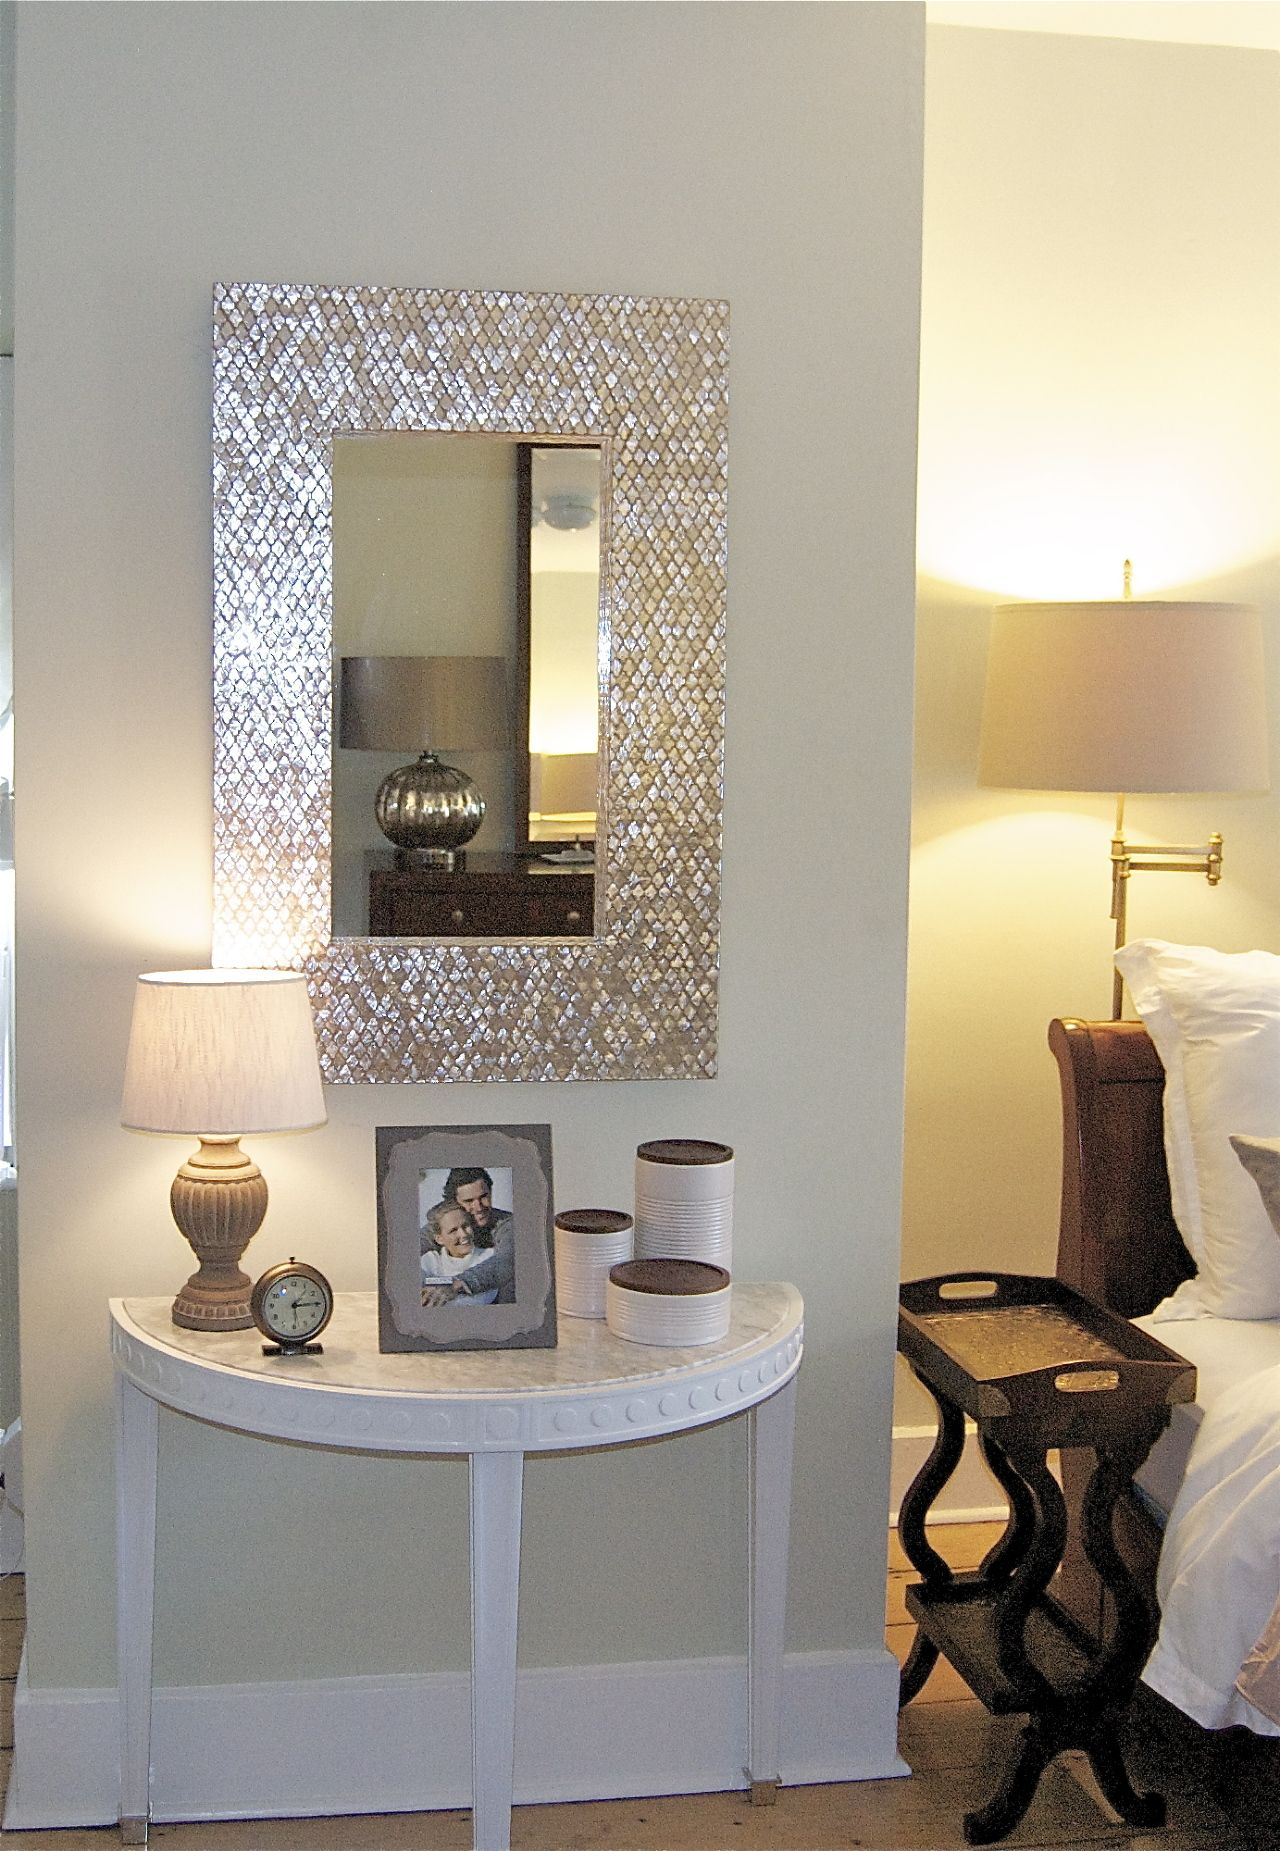 Mirror horchow demilune jonathan adler demilune accessories mirror horchow demilune jonathan adler demilune accessories target bedside table geotapseo Image collections